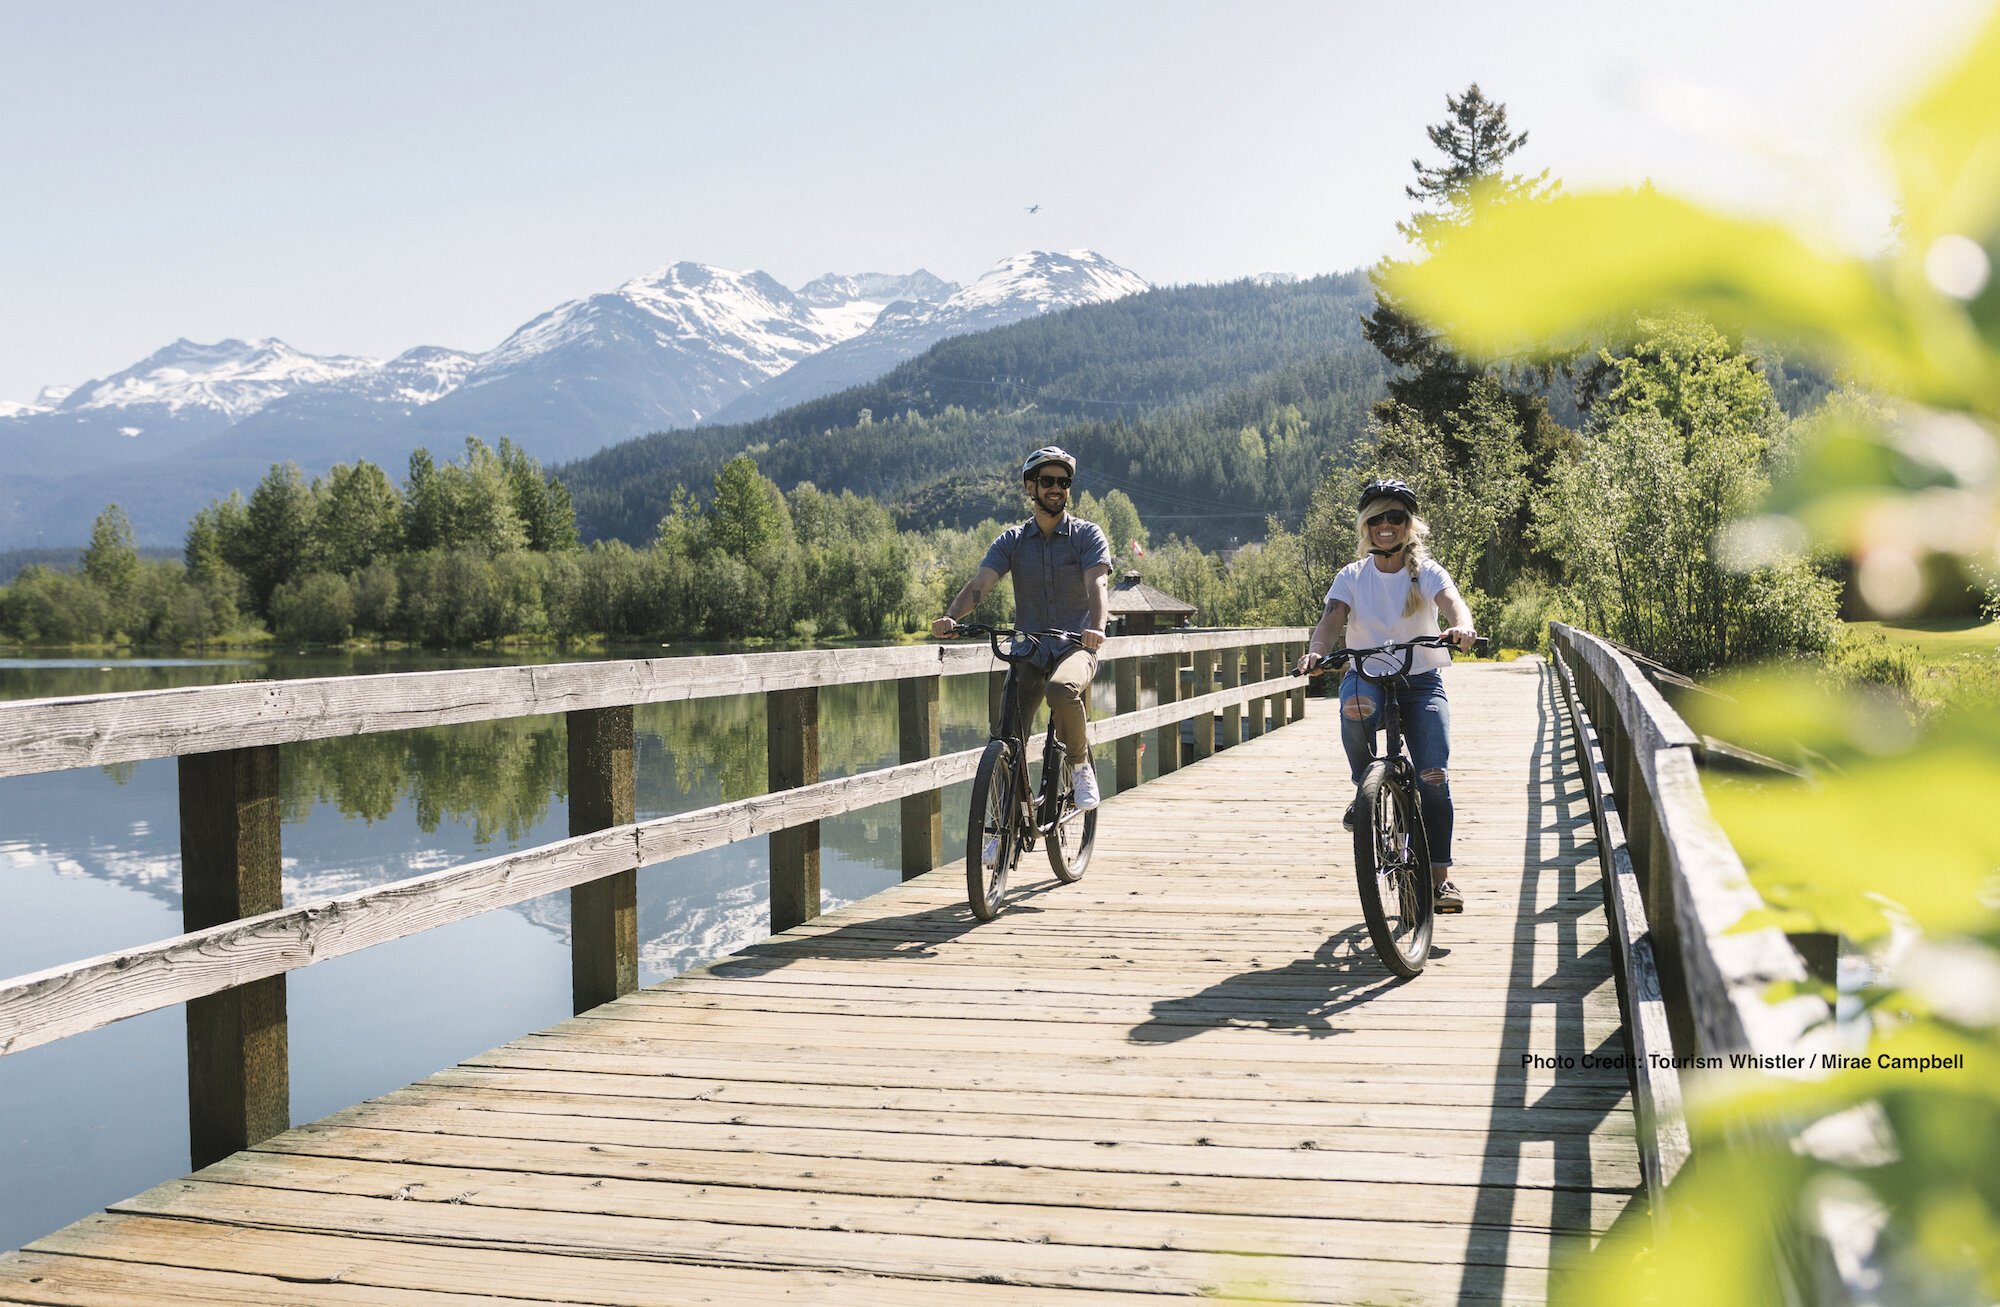 Whistler Valley Trail Bikers